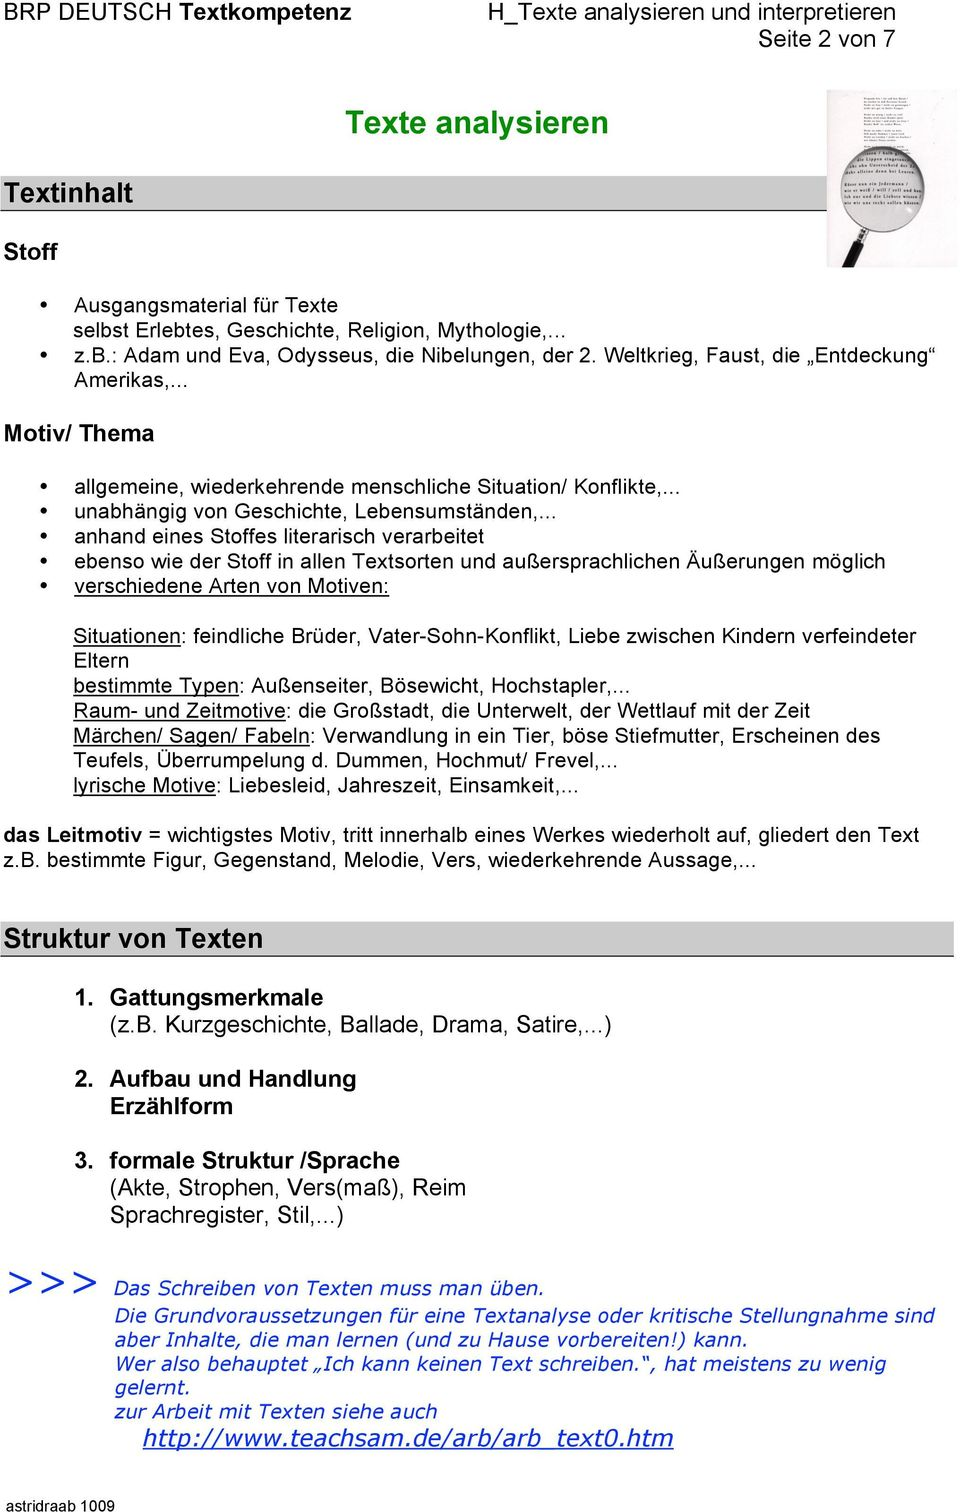 Texte Analysieren Und Interpretieren Pdf